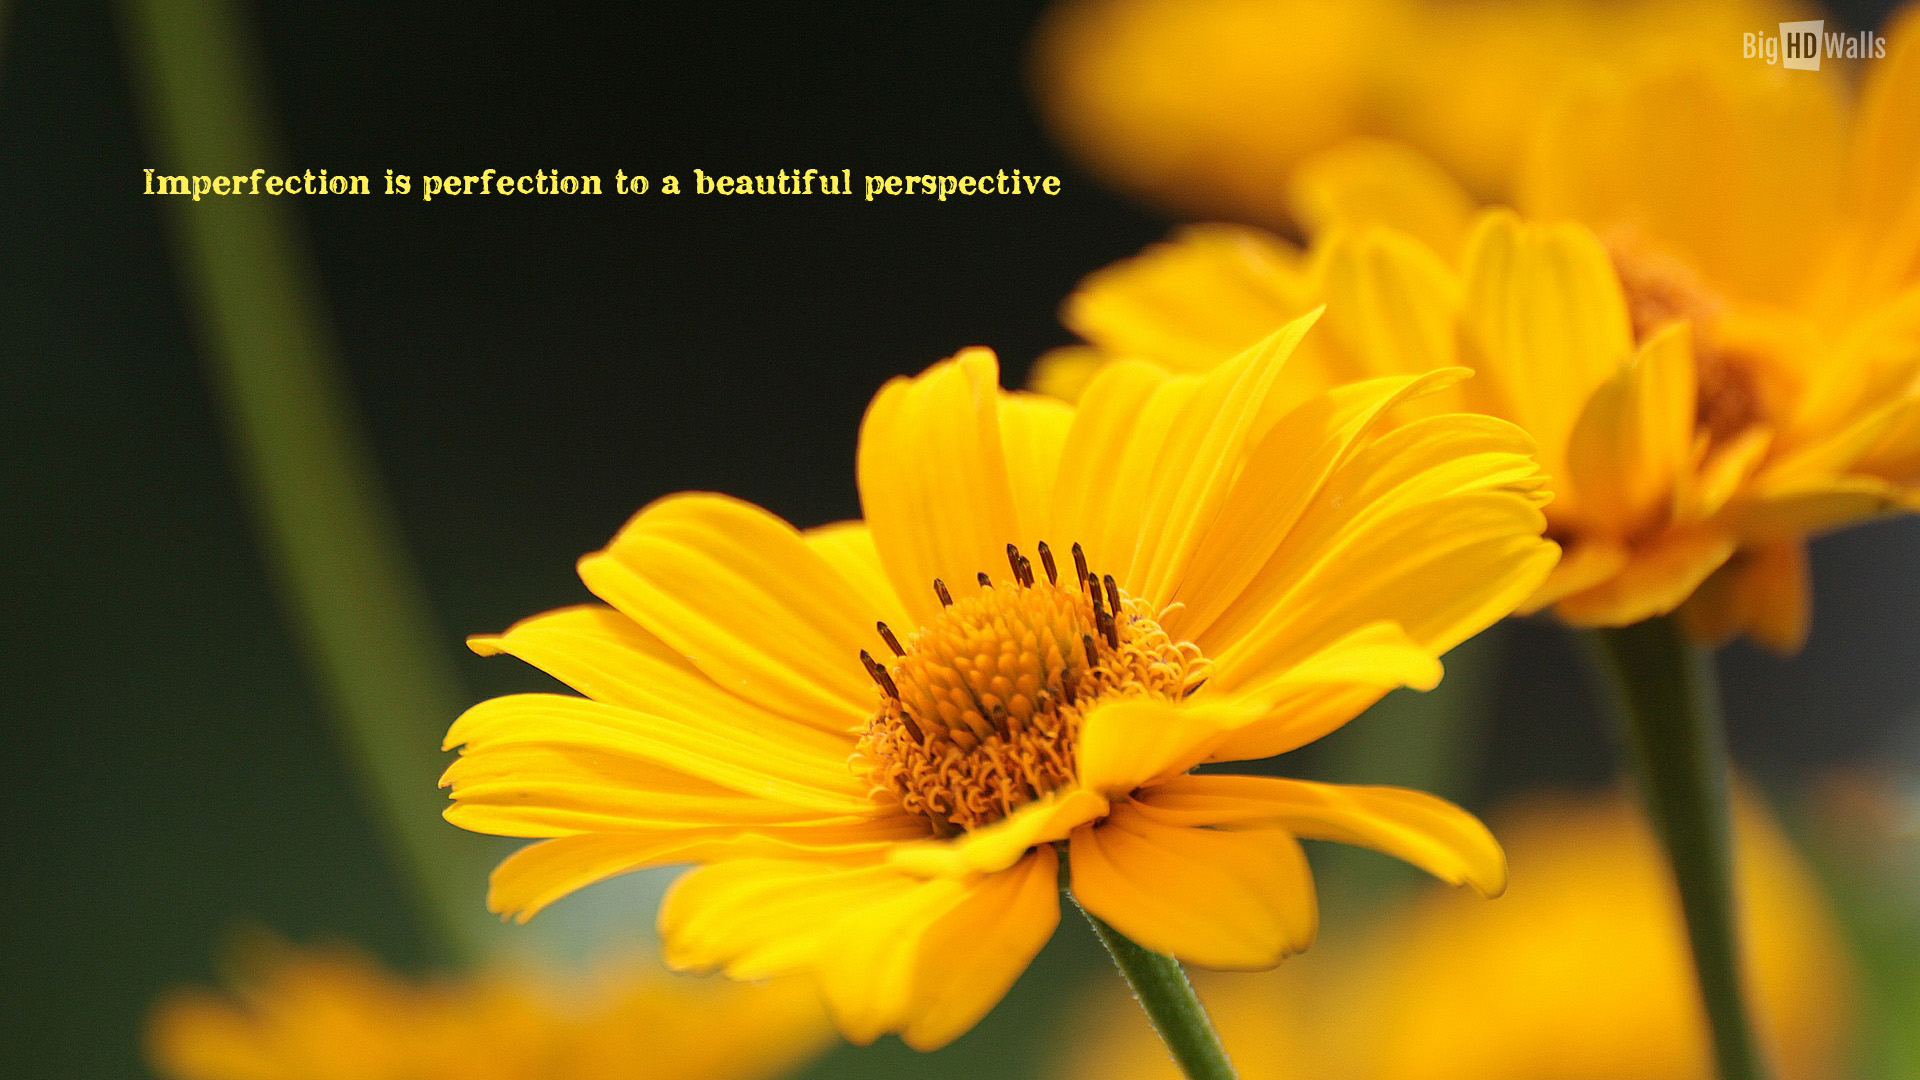 Beautiful Yellow Flower Wallpaper - Quotes On Yellow Flower , HD Wallpaper & Backgrounds